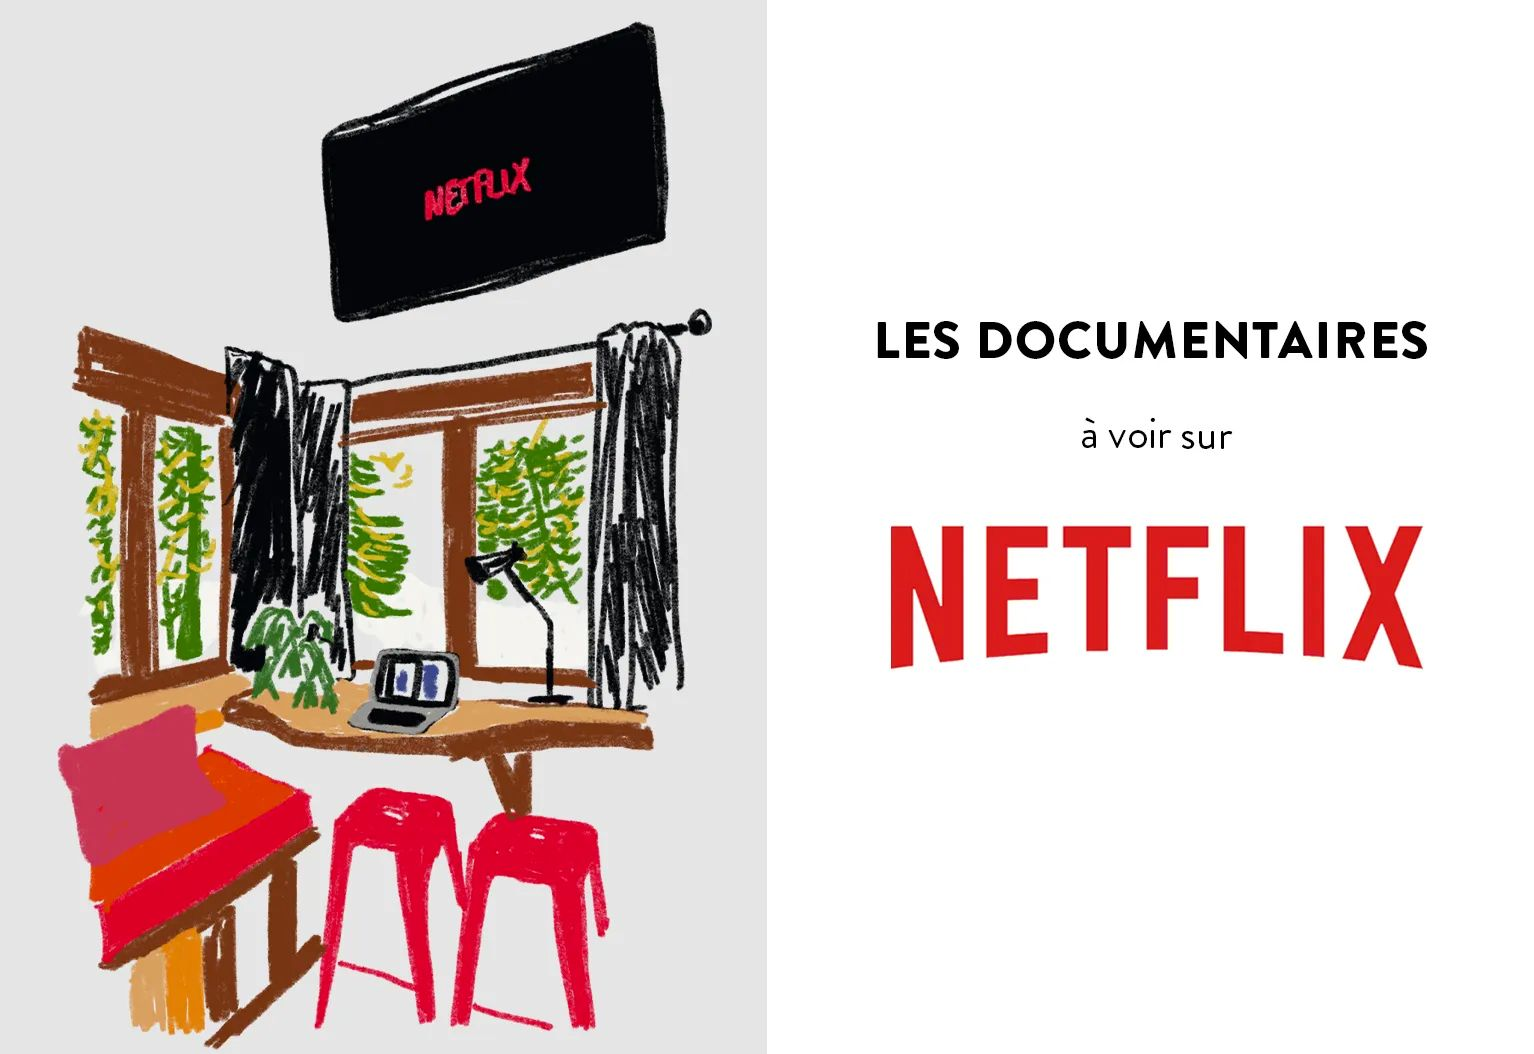 netflix films documentaires